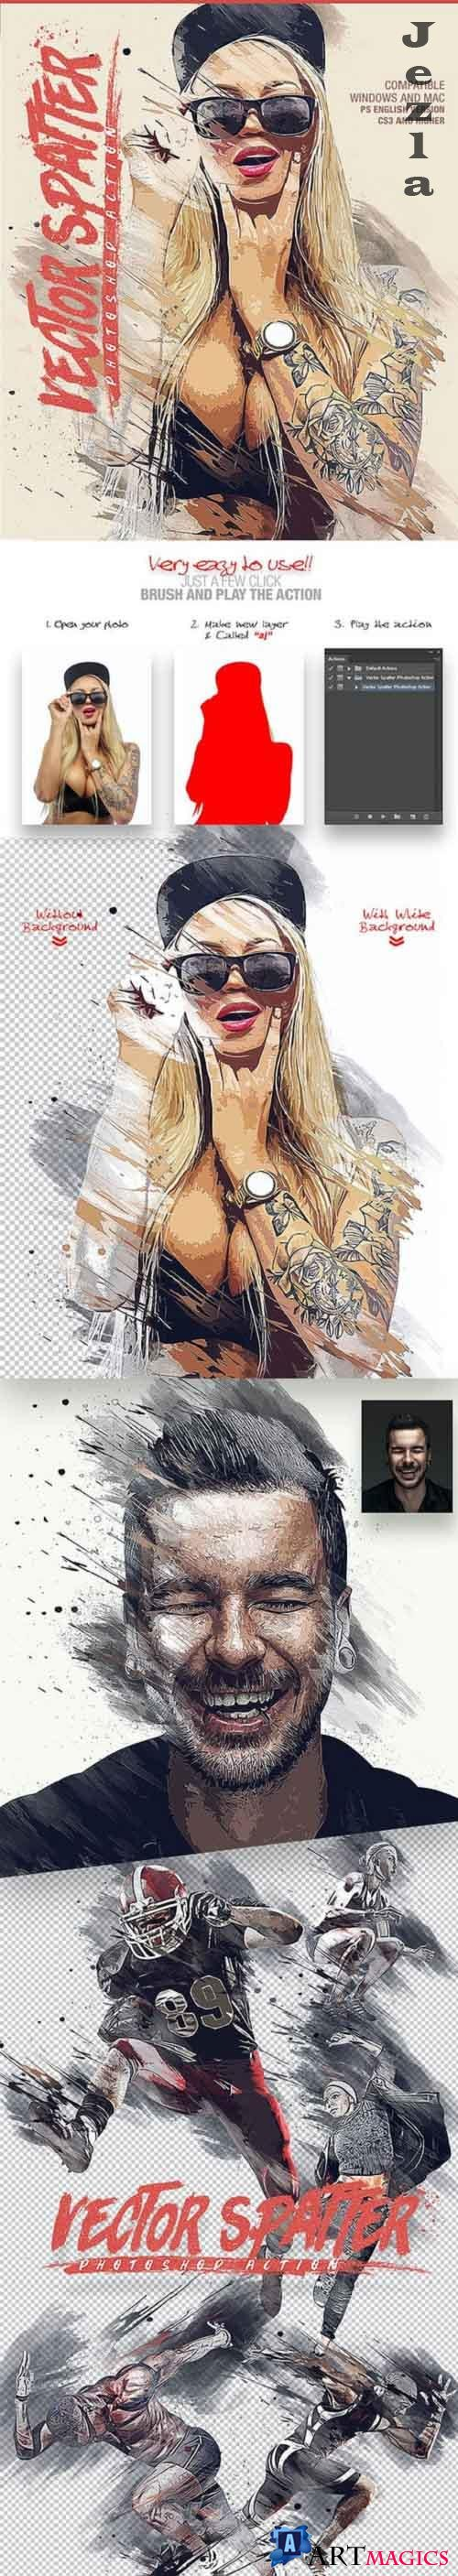 Vector Spatter Photoshop Action 27115313